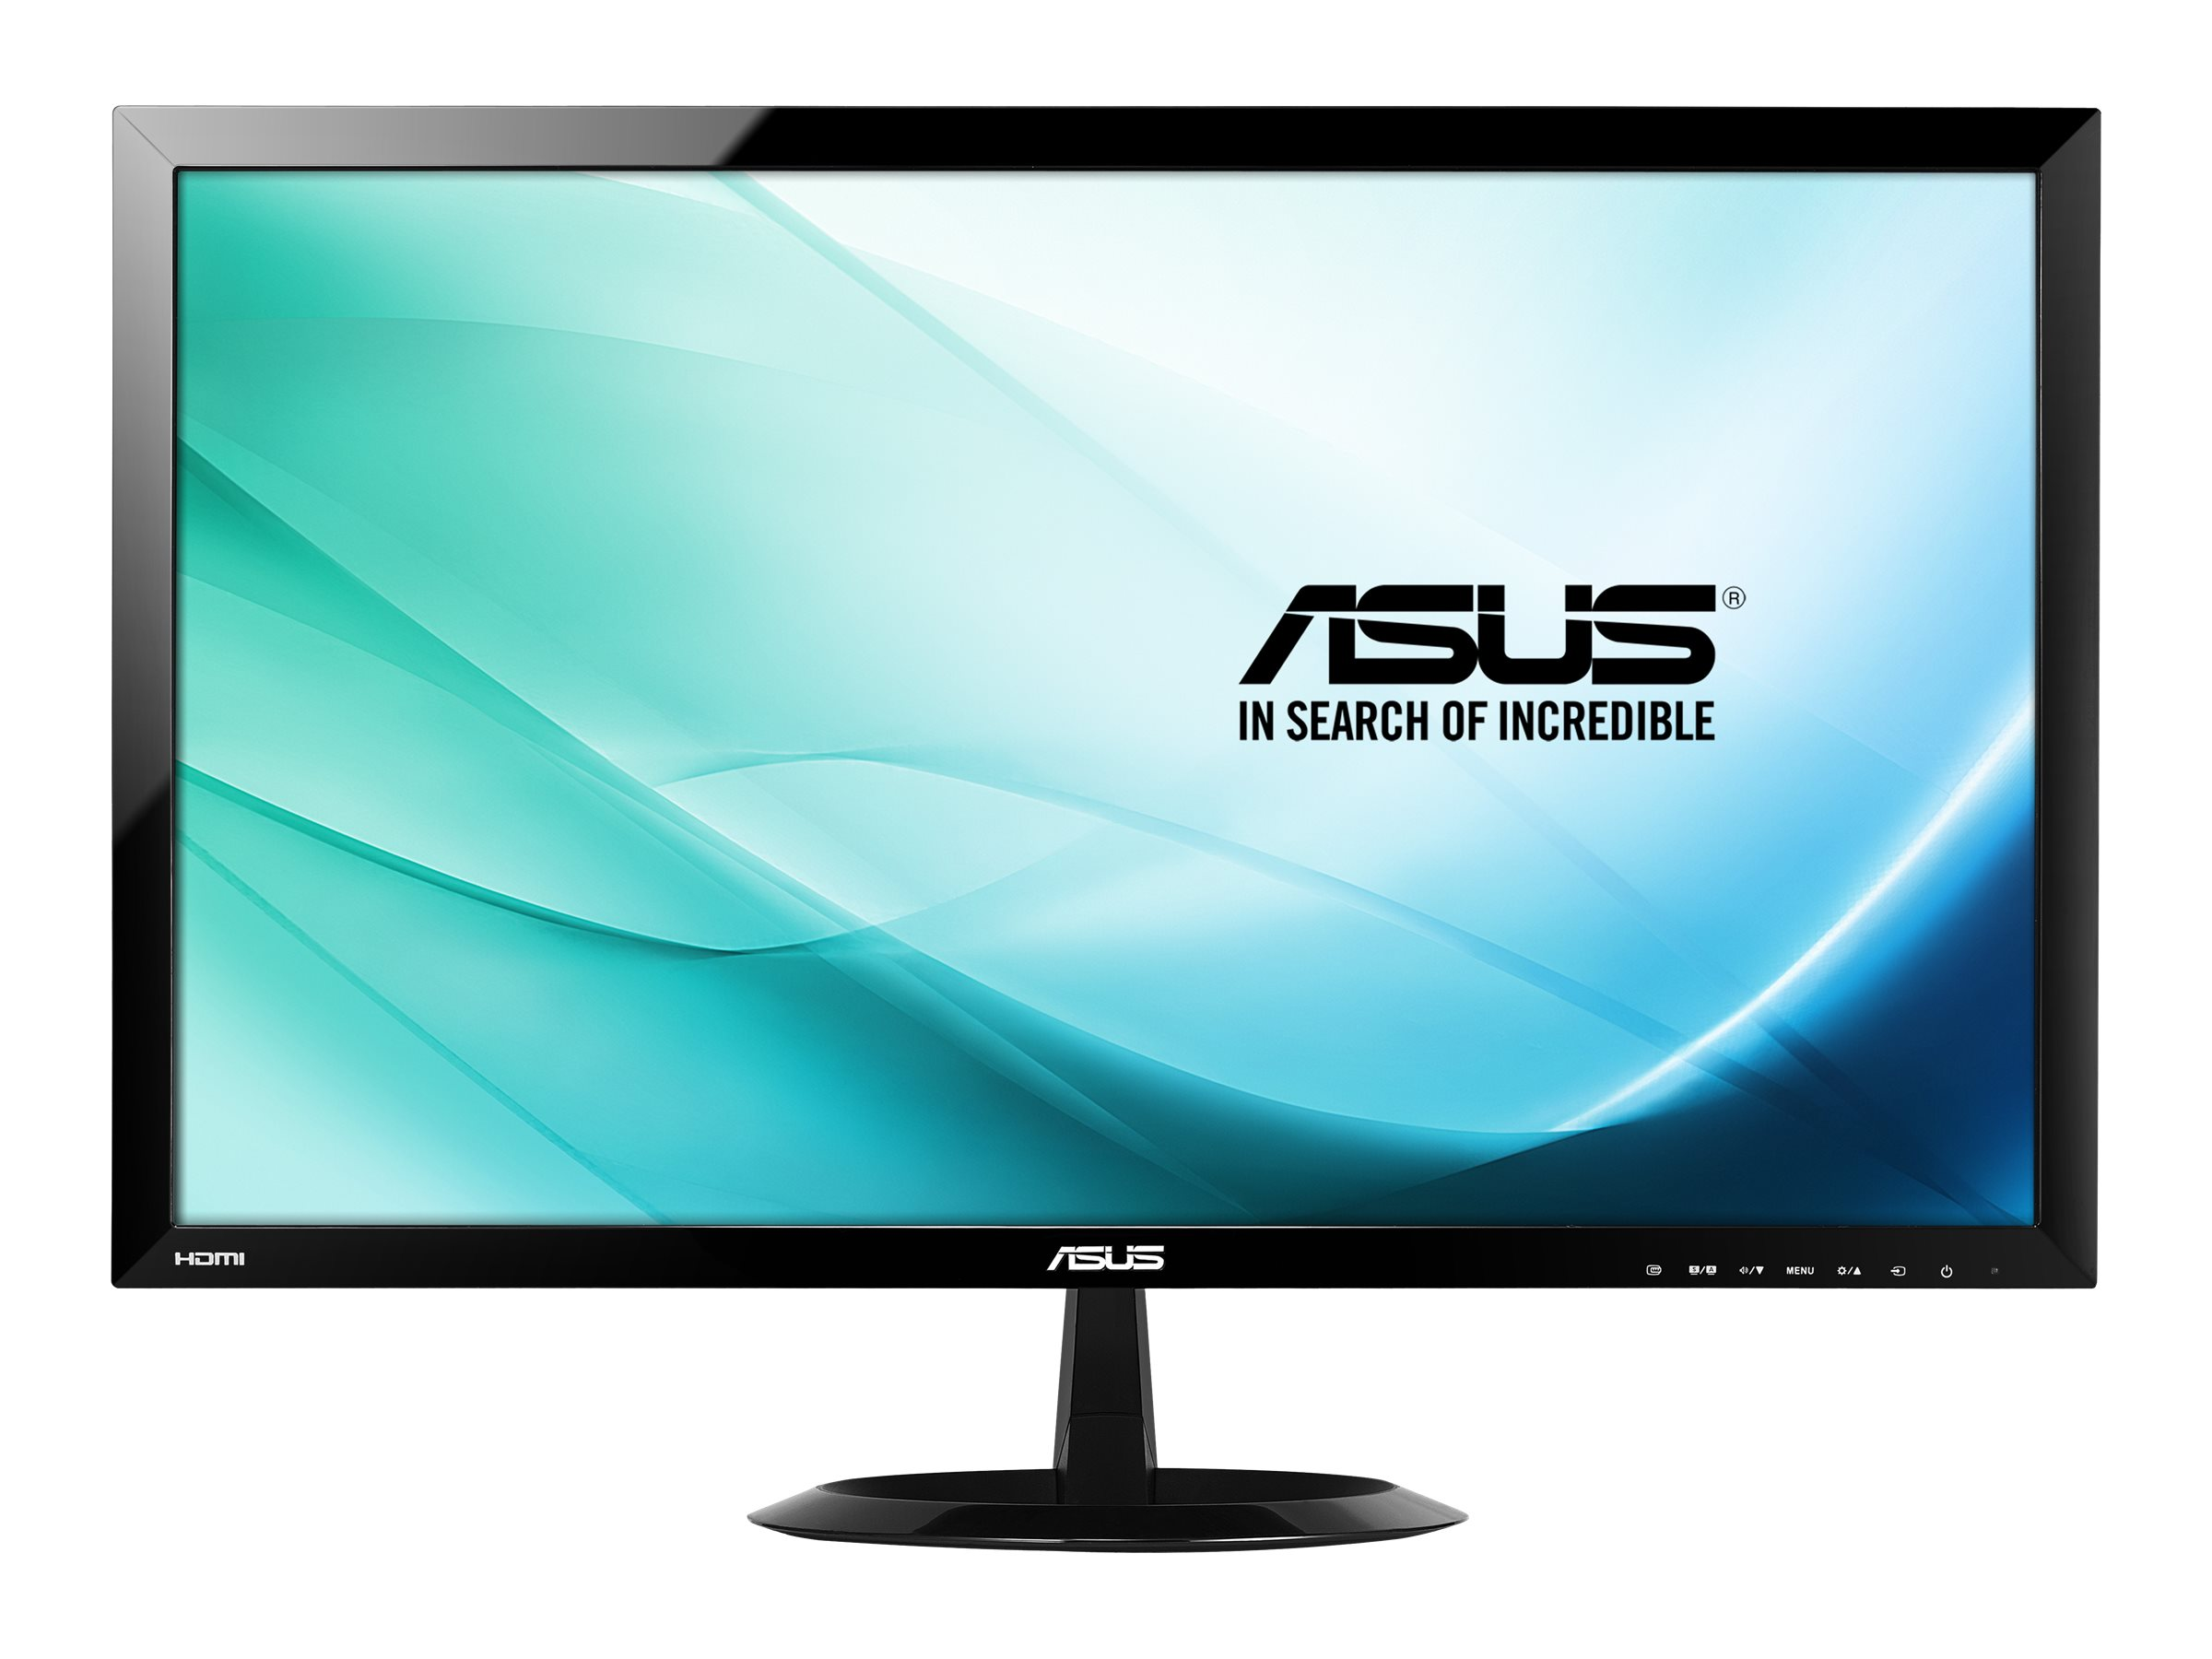 """Image for Asus - Led Monitor - Full Hd (1080P) - 24"""" from Circuit City"""